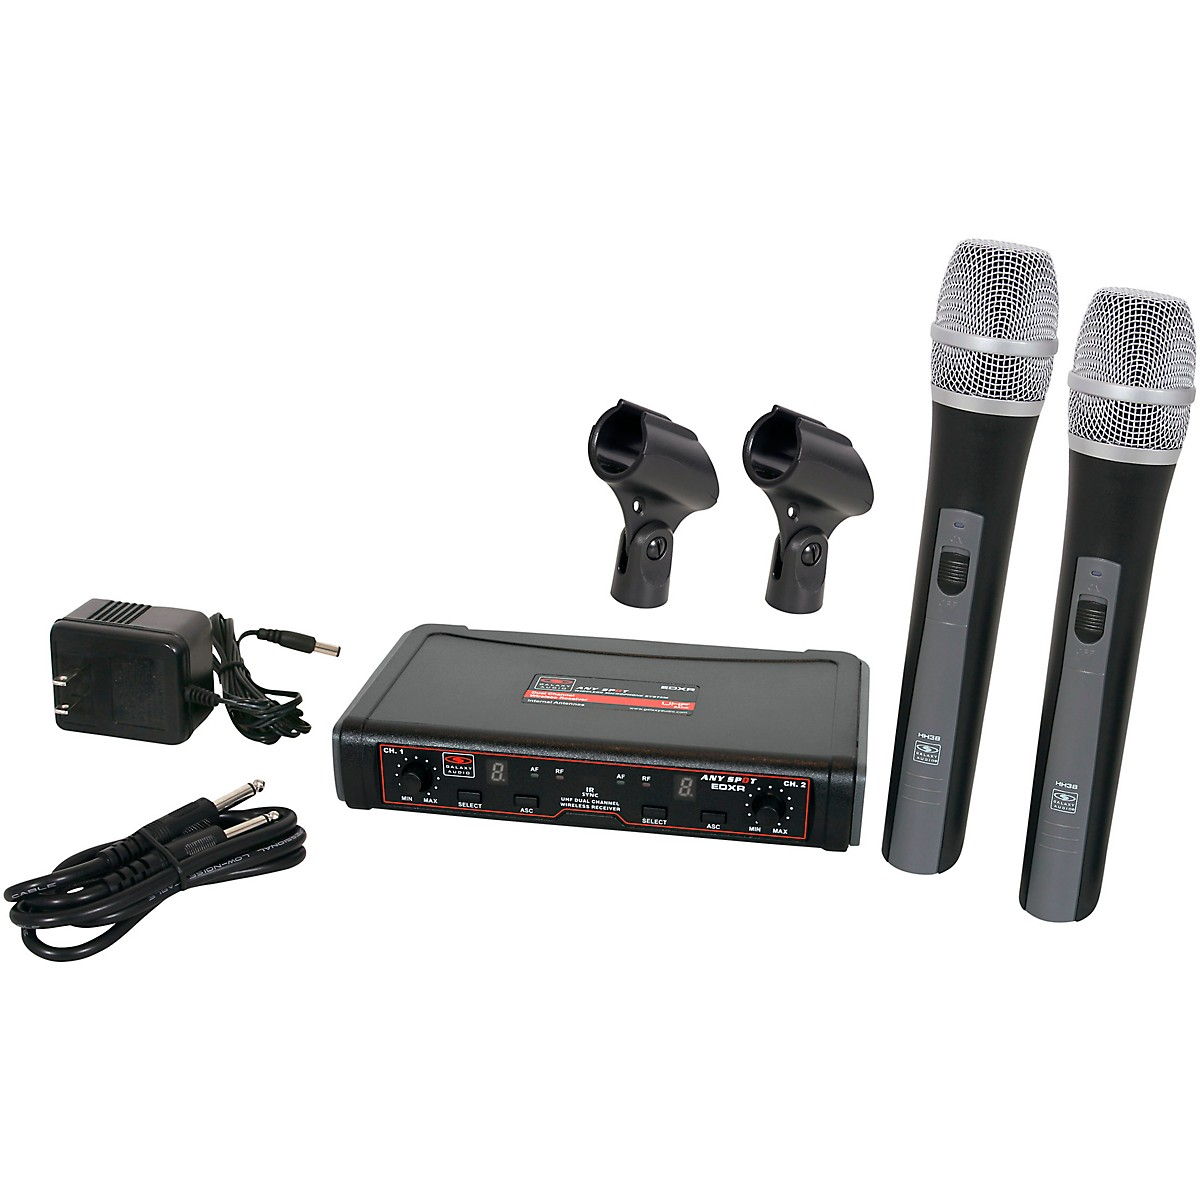 Galaxy Audio EDXR/HH38N Dual Channel Wireless Microphone System includes the EDXR Receiver and 2 HH38 Handheld Transmitters Frequency CODE N 518-542 MHz